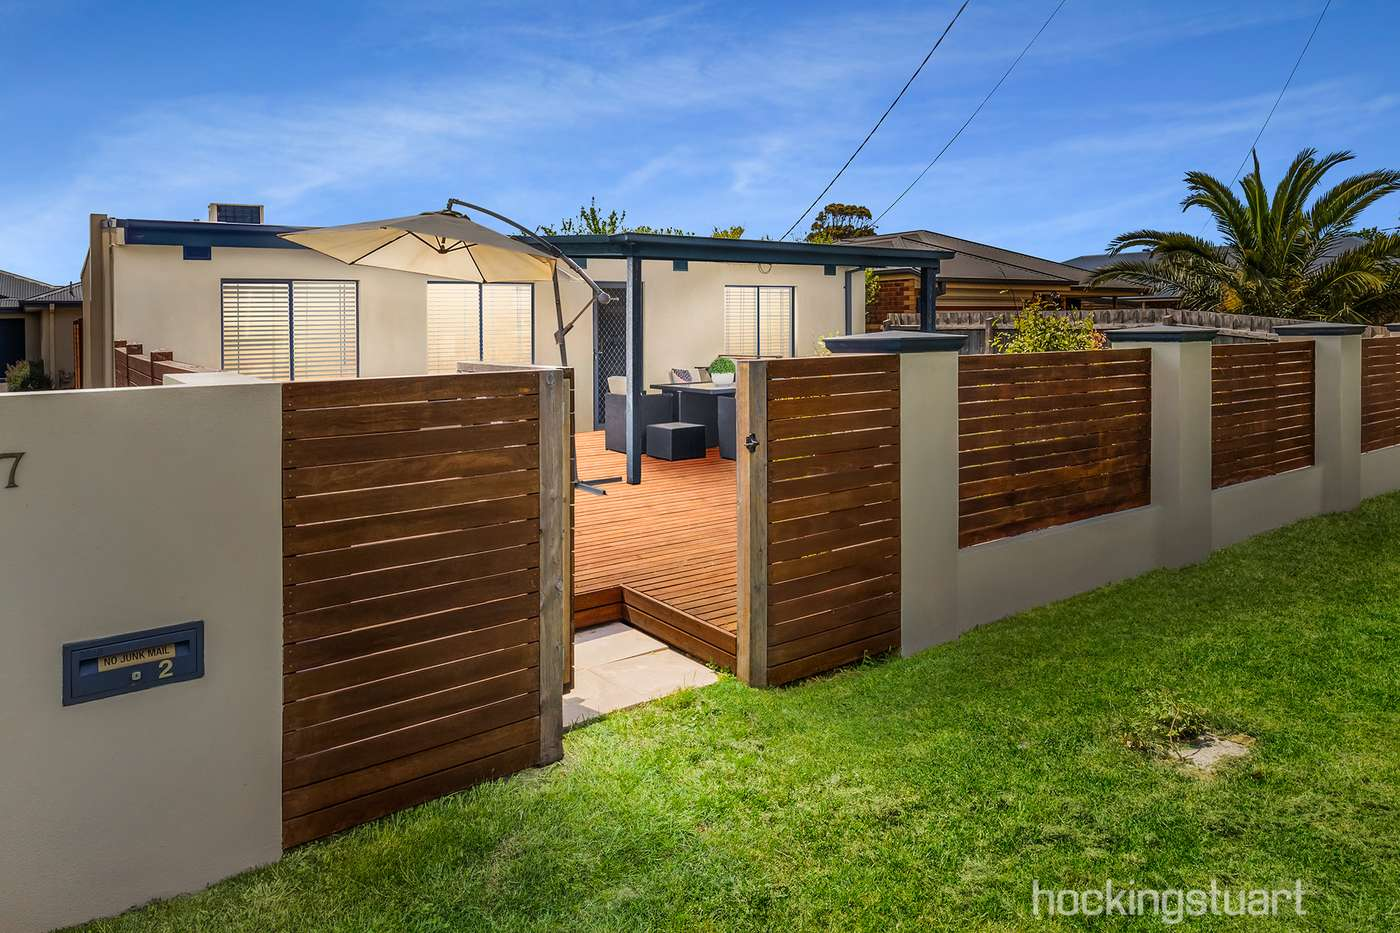 Main view of Homely house listing, 1/17 Solander Street, Dromana, VIC 3936